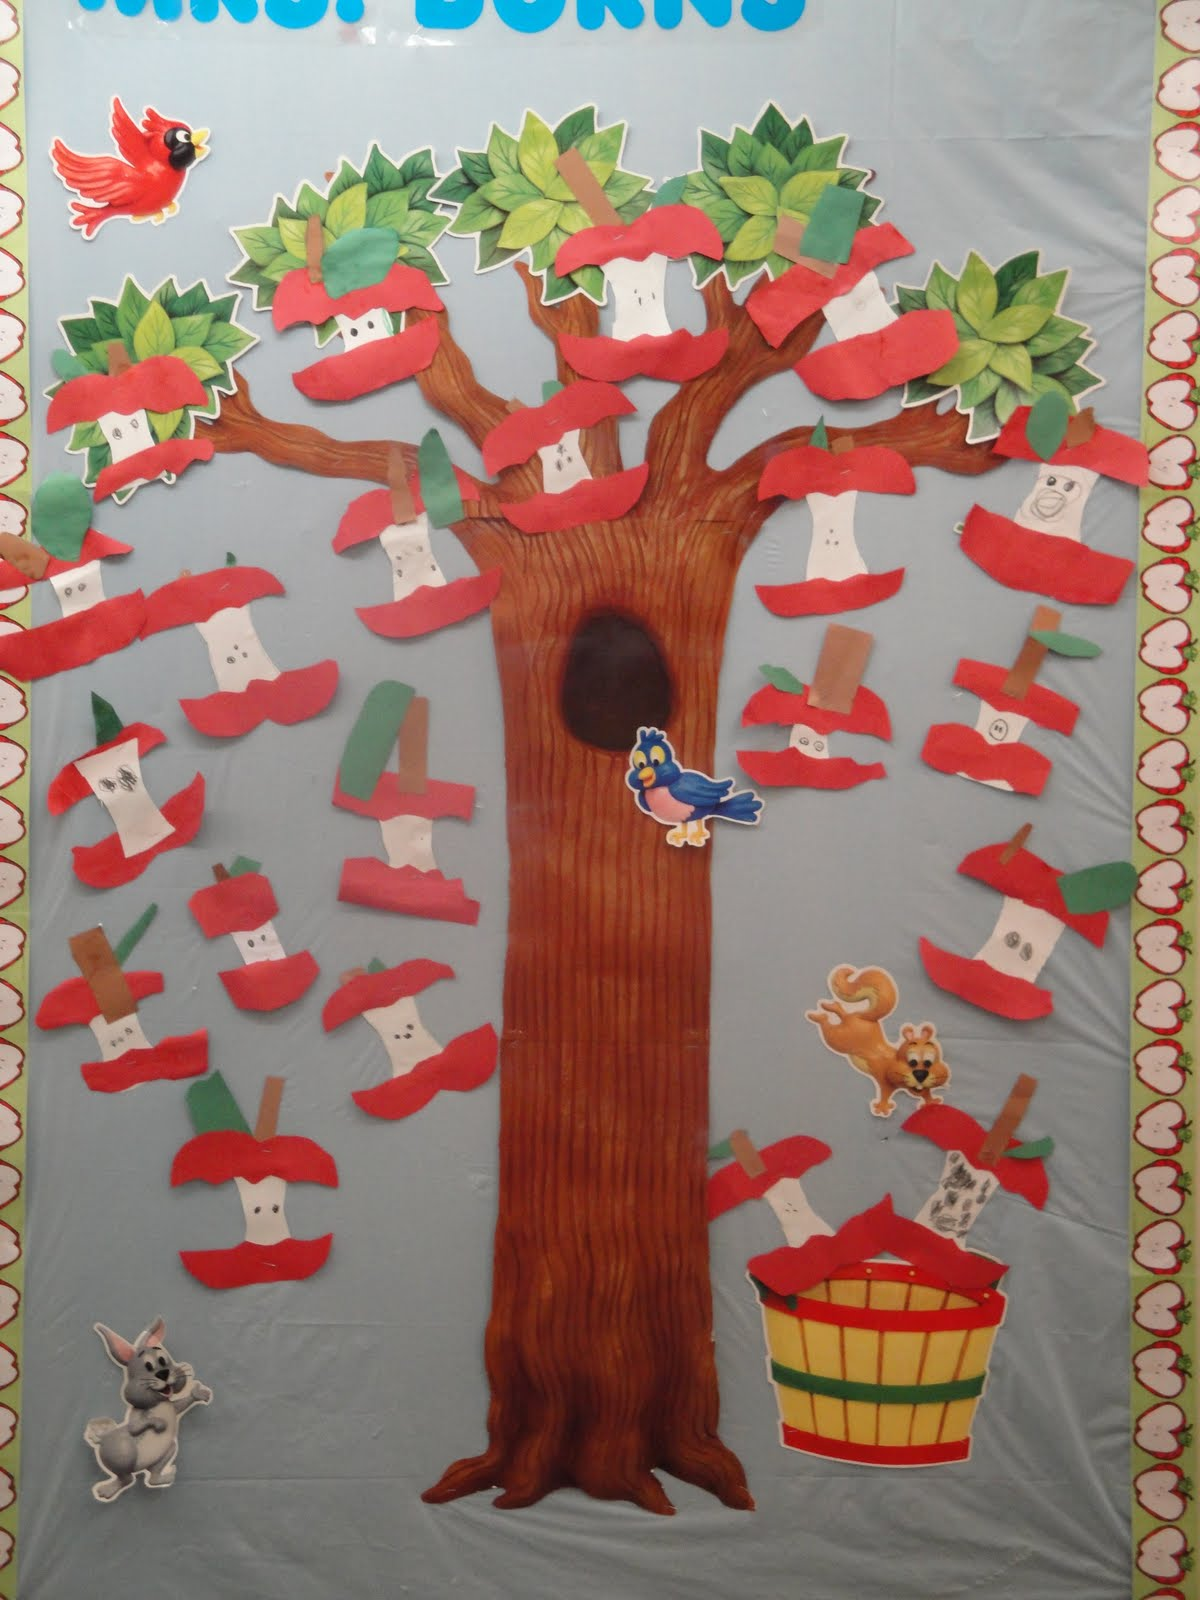 Mrs burns 39 kindergarten hallway bulletin boards for Apple tree classroom decoration